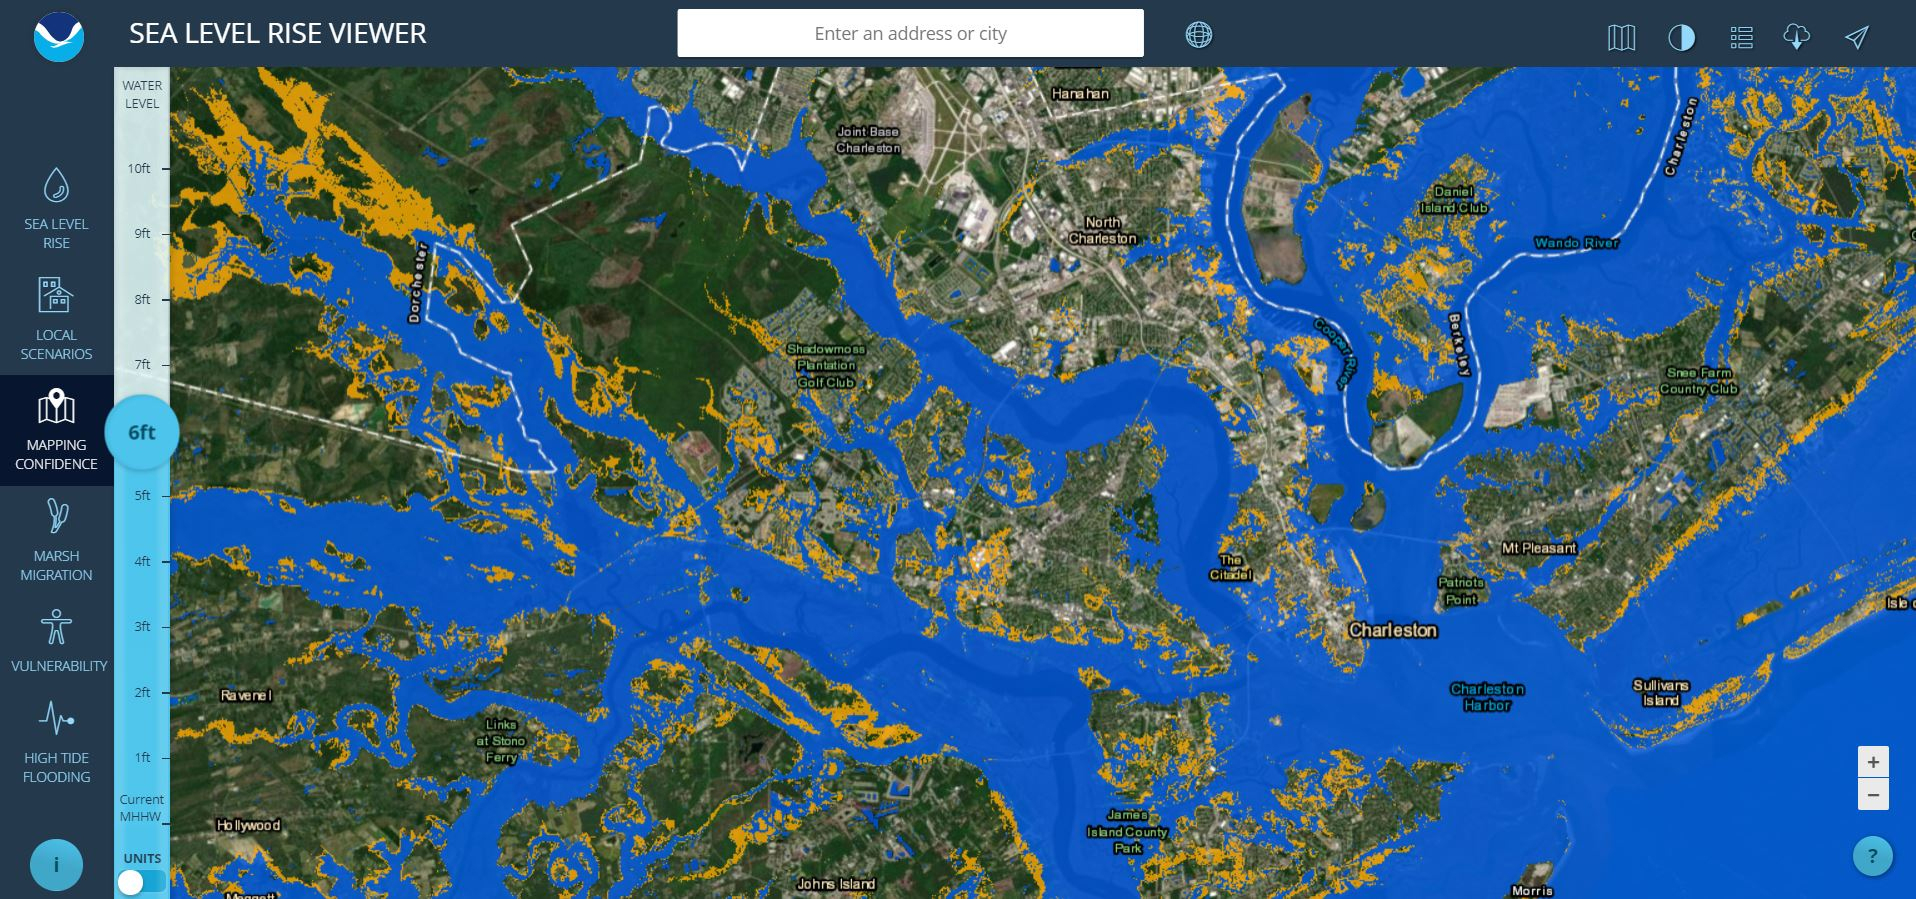 Sea Level Rise Viewer - Florida Elevation Above Sea Level Map